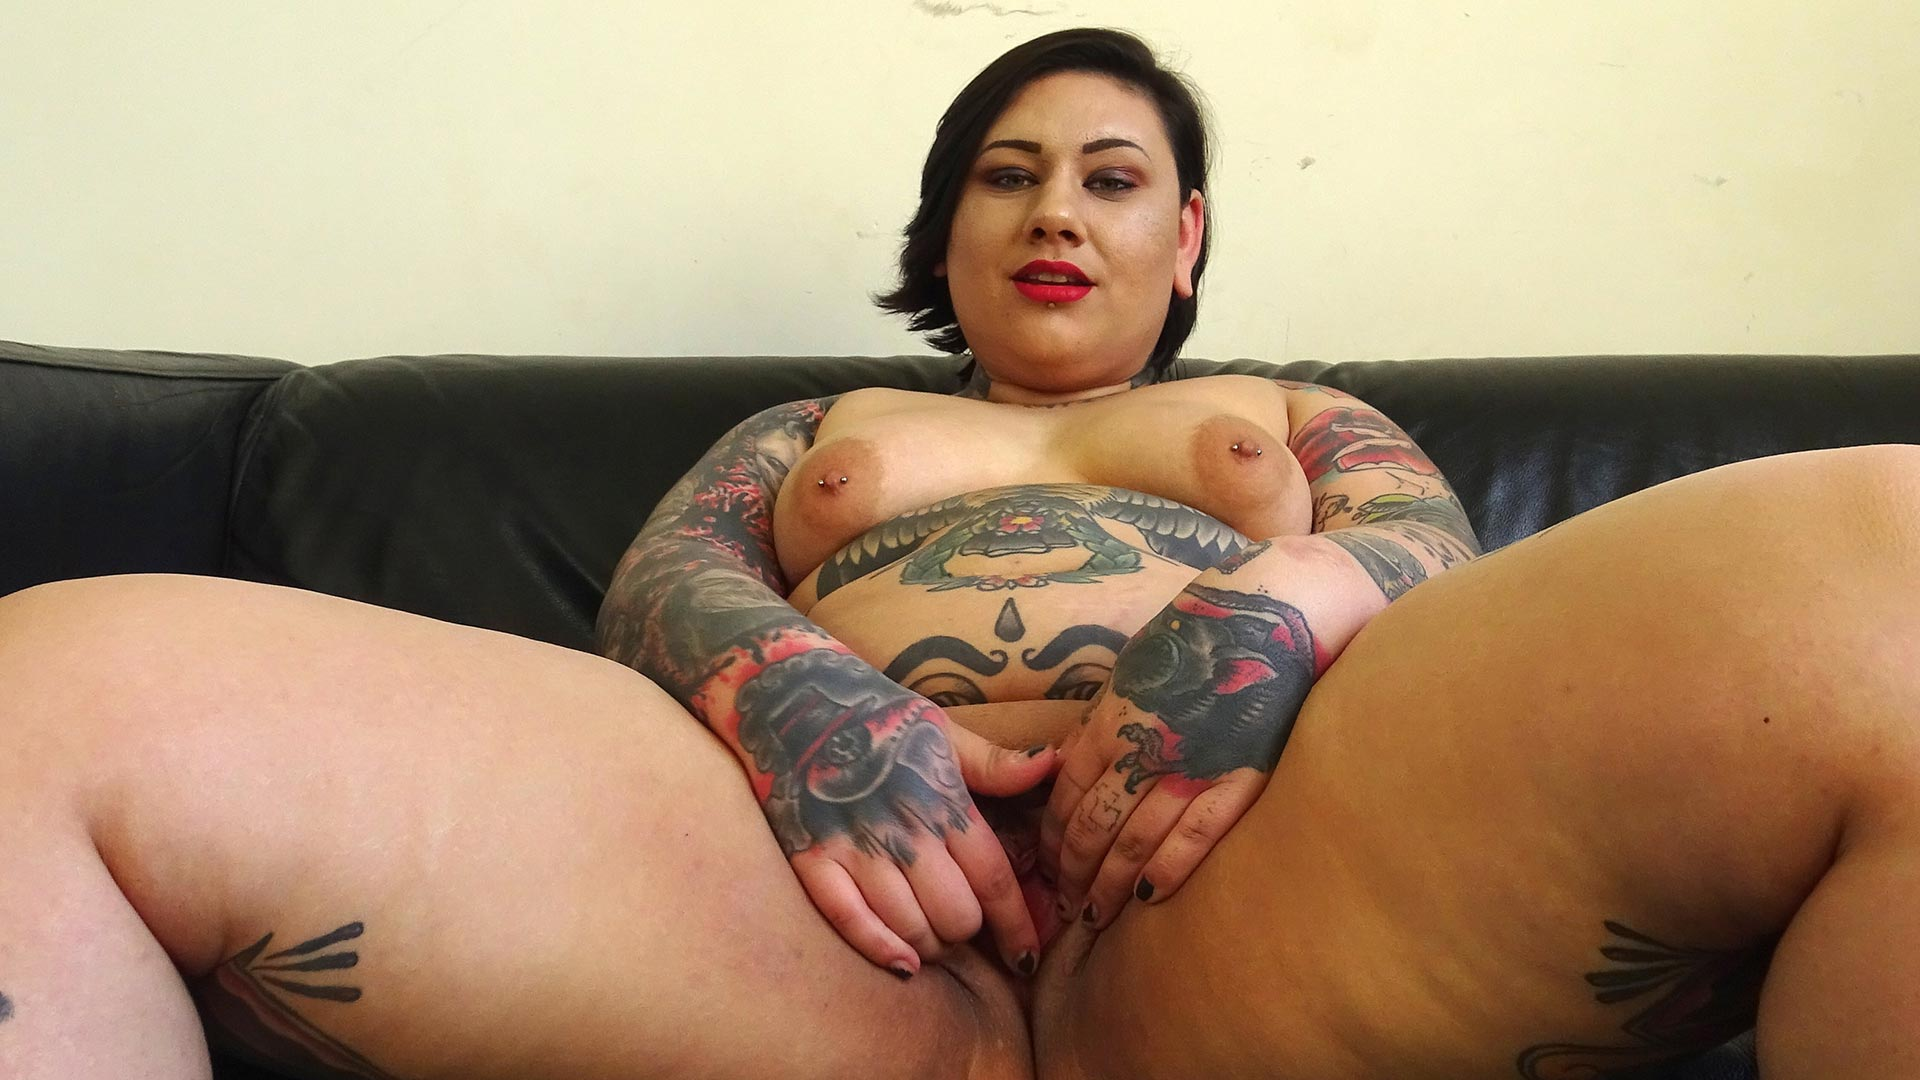 Preview Pascal Sub Sluts - SubSlut  Lily Brutal: choking herself during her solo vid